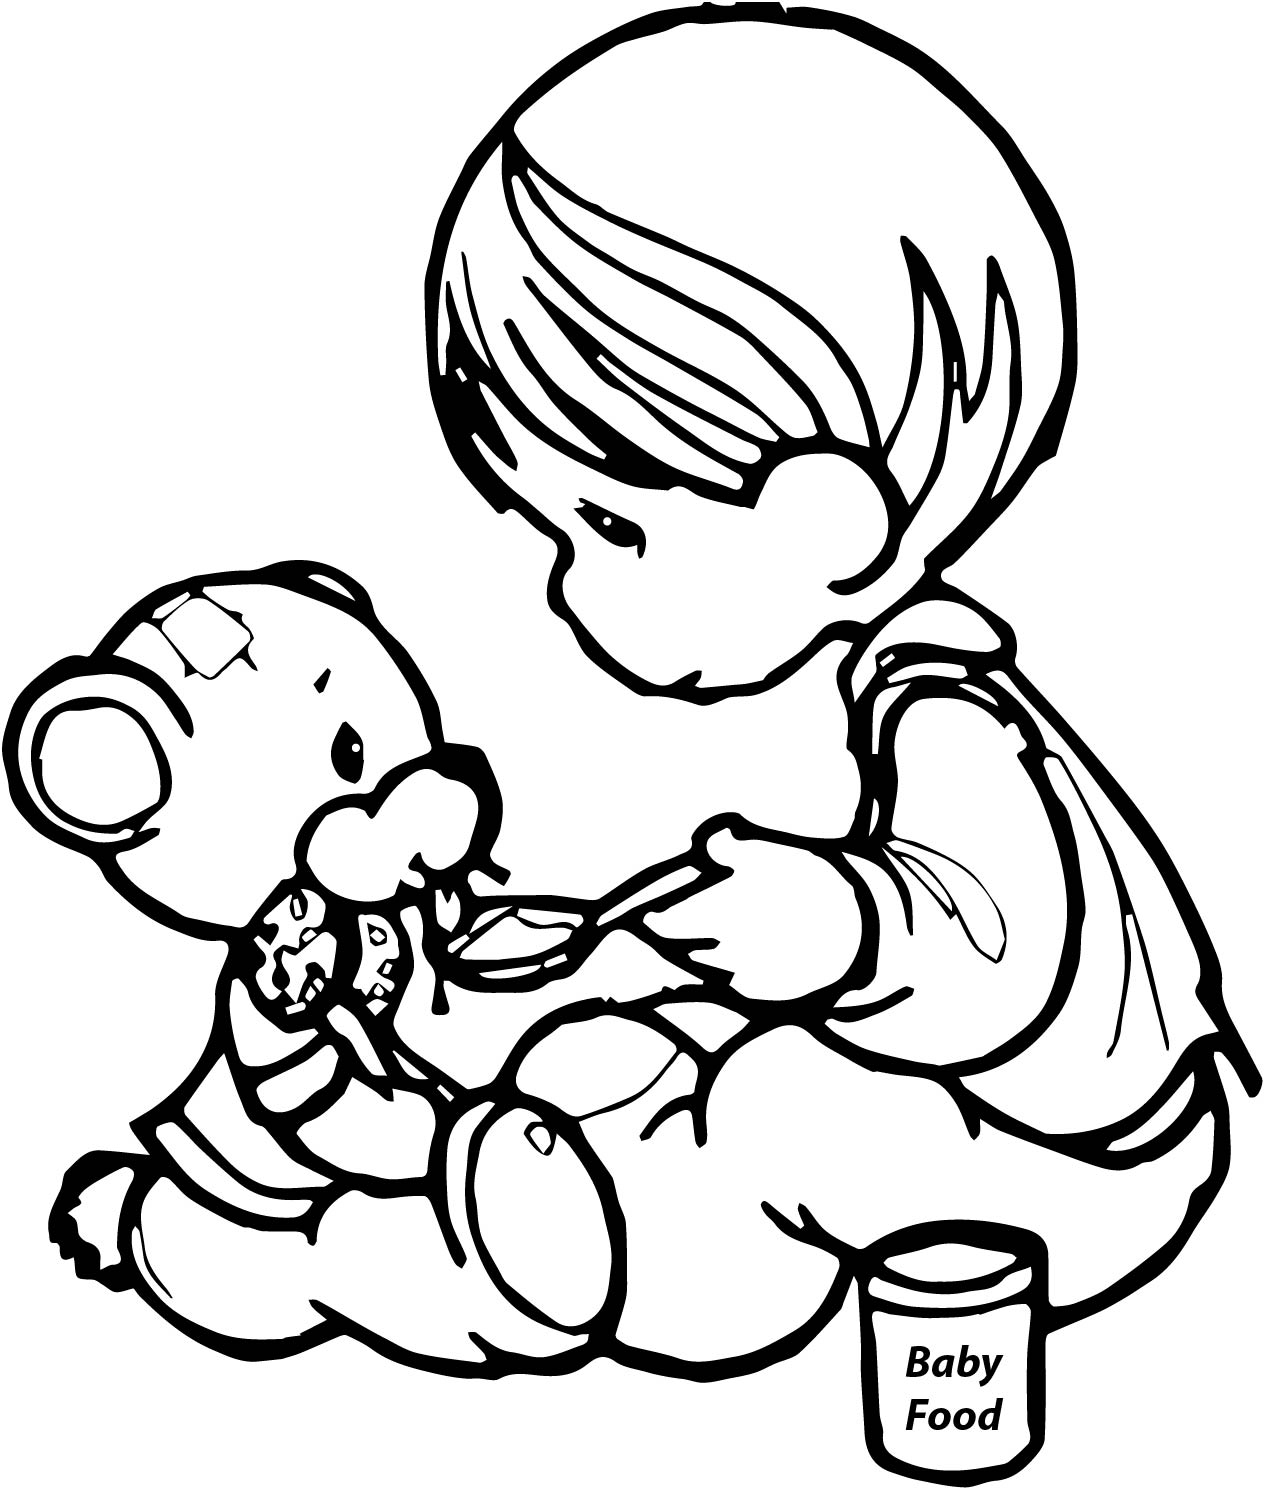 Precious Moments Eat Bear Toy Coloring Page